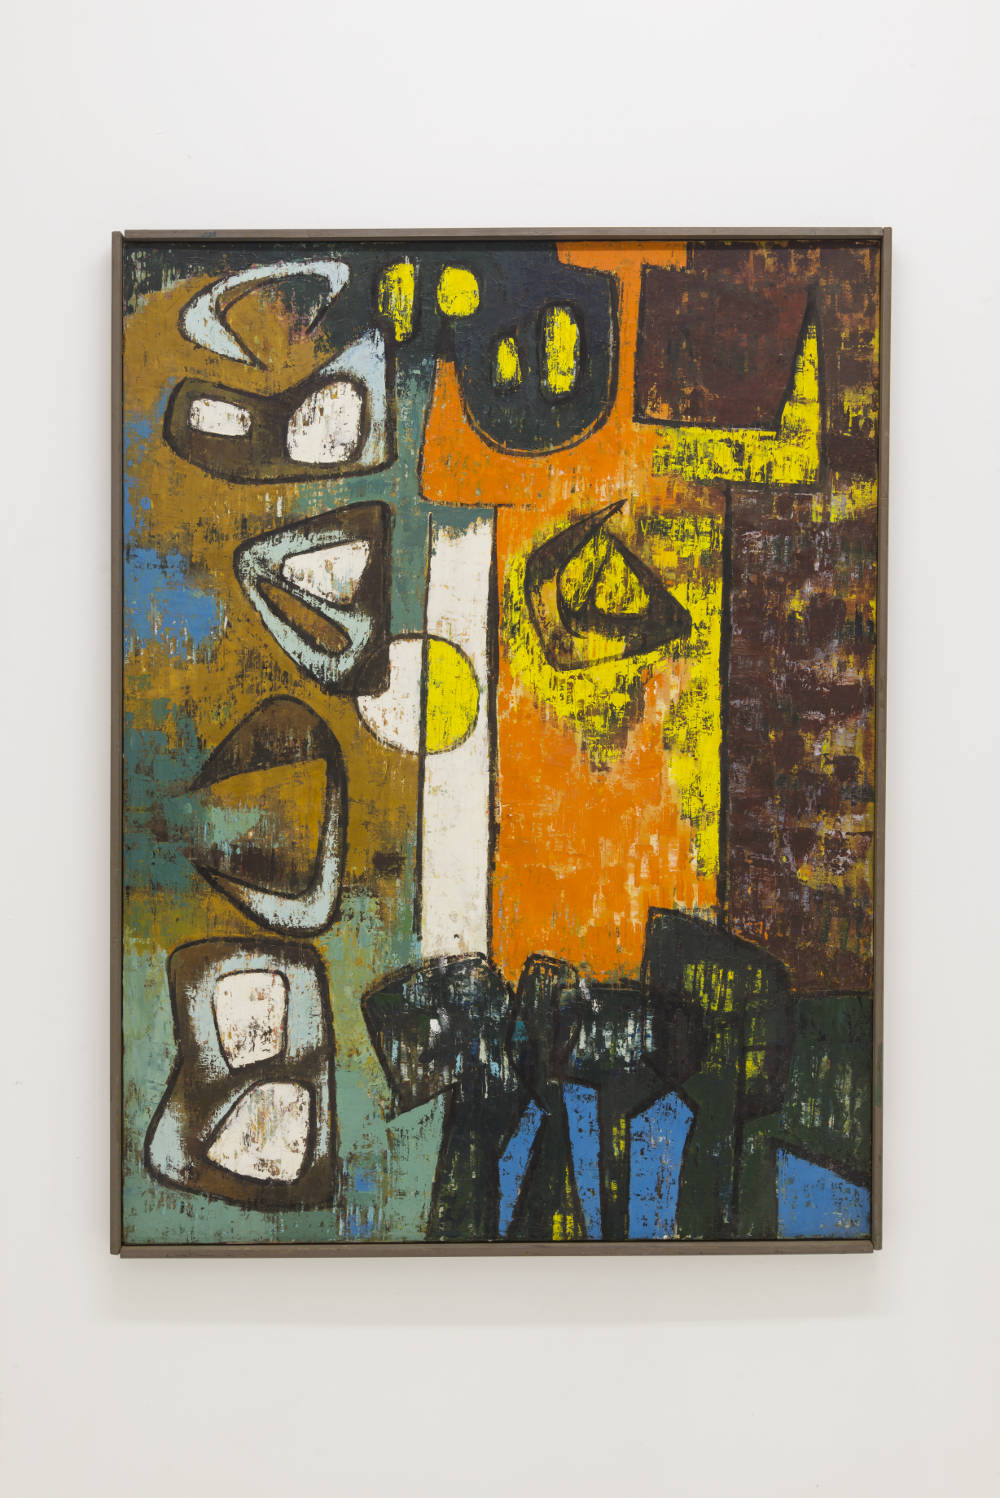 Luchita Hurtado, Untitled, 1951. Oil on canvas 101.6 x 76.2 cm / 40 x 30 inches © Luchita Hurtado. Courtesy the artist and Hauser & Wirth. Photo: Jeff McLane